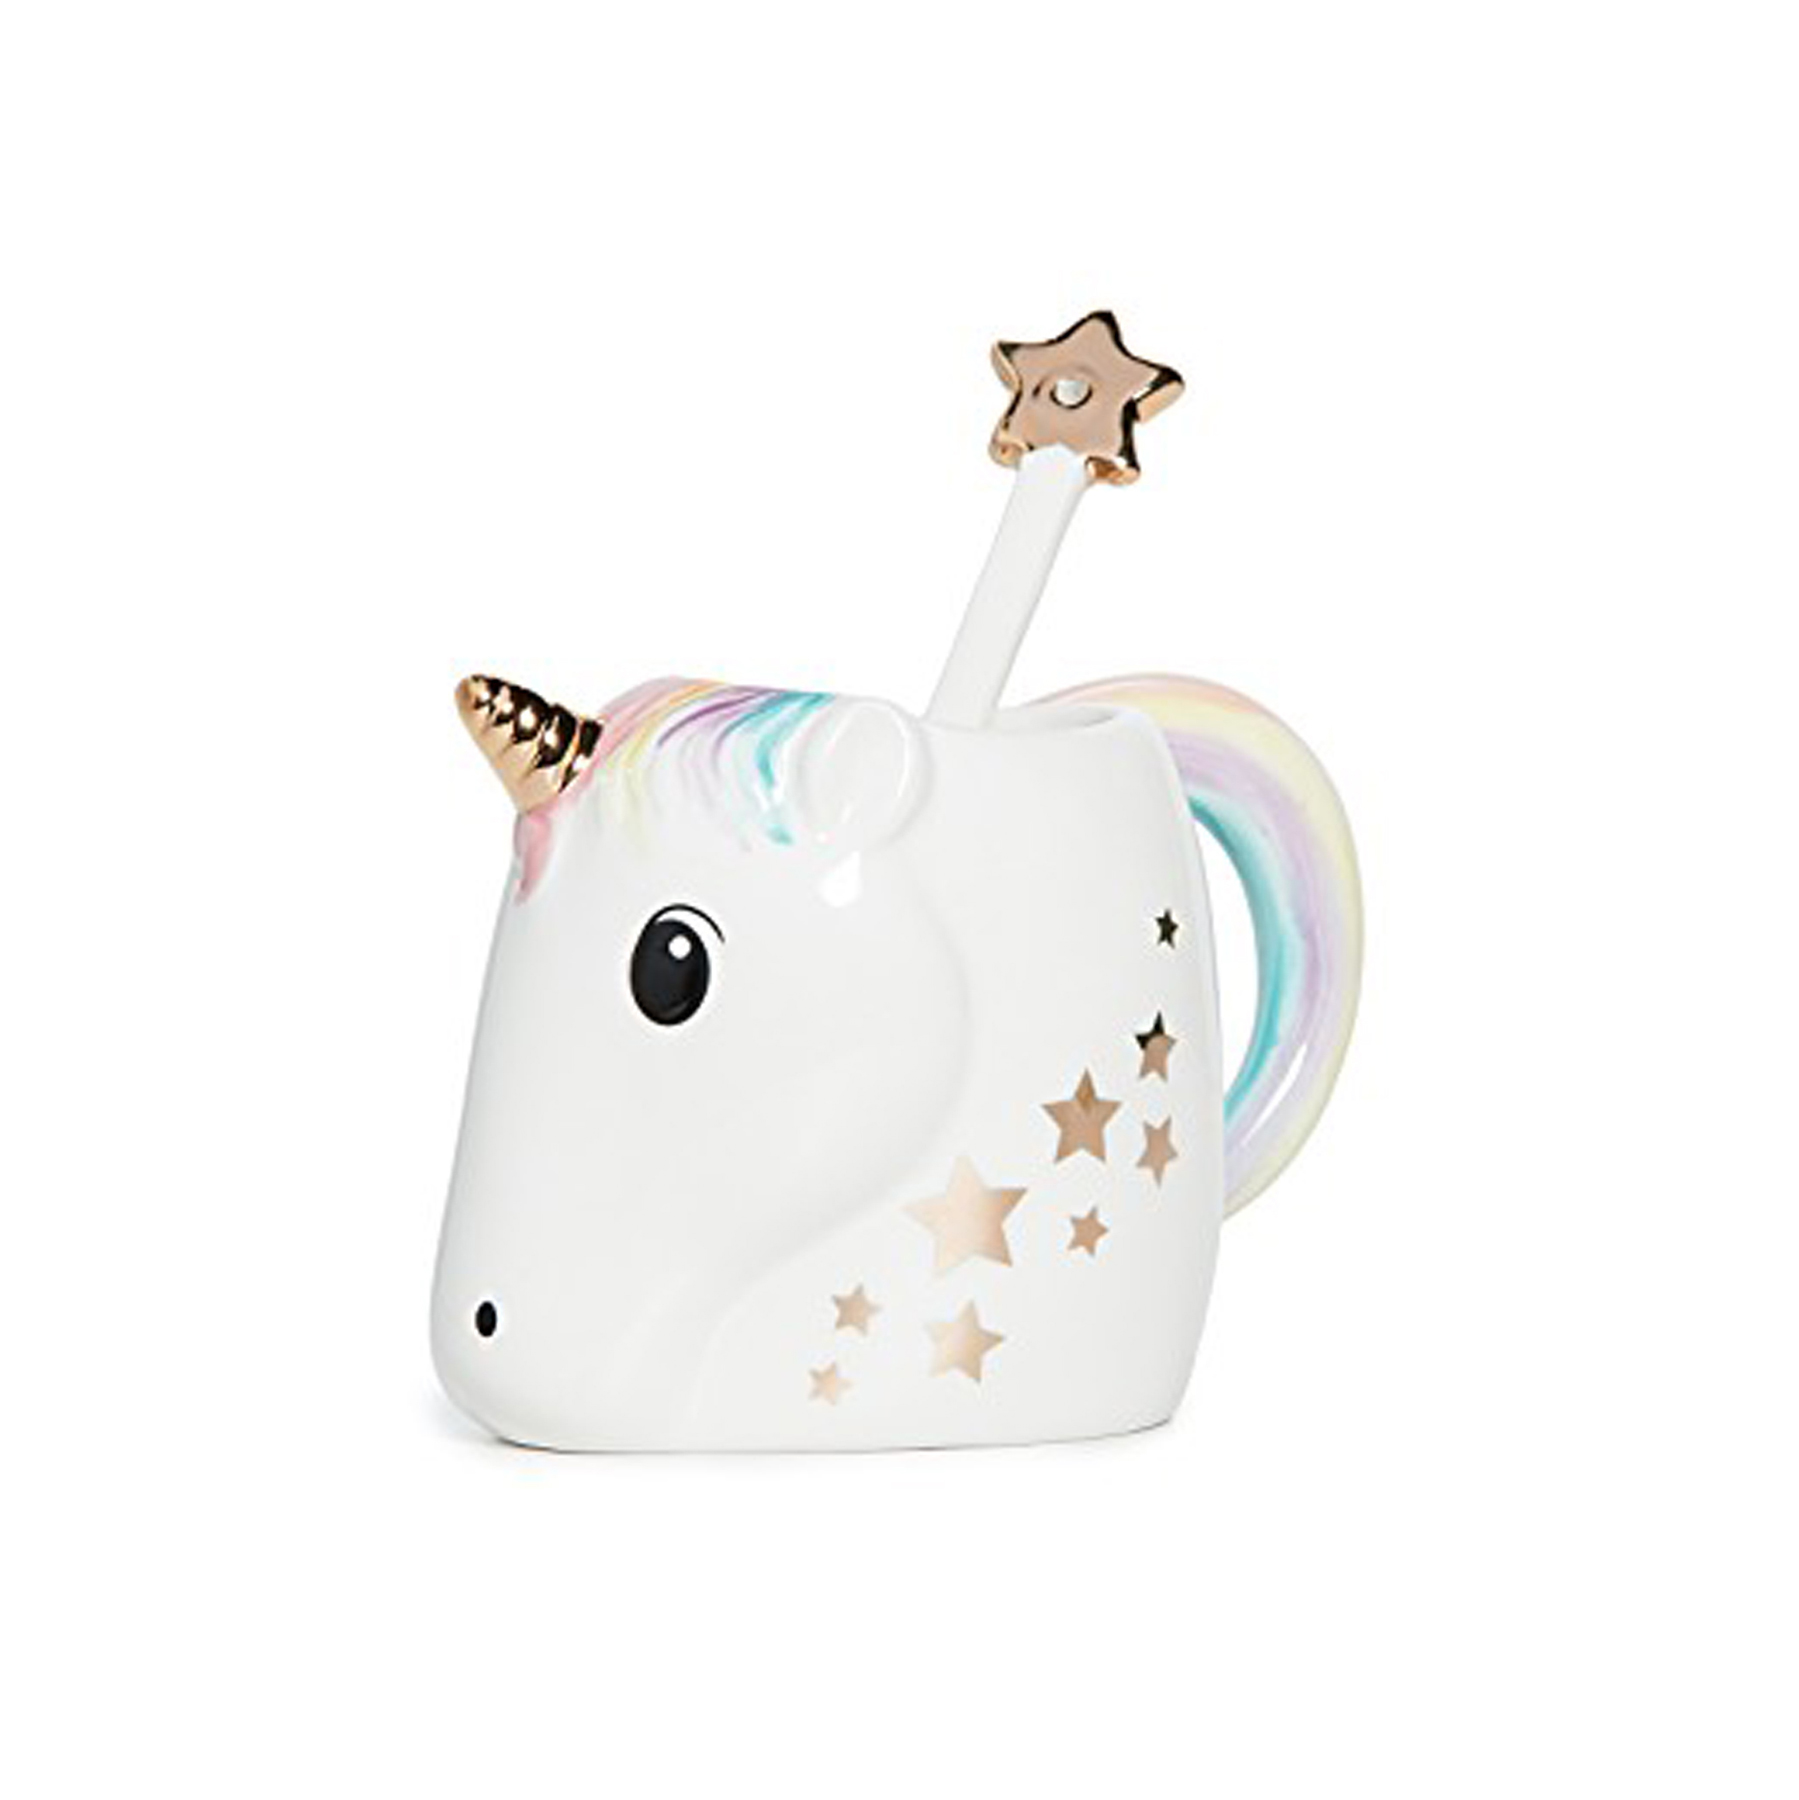 Cheap Christmas Gifts: Unicorn Mug with Star Stirrer